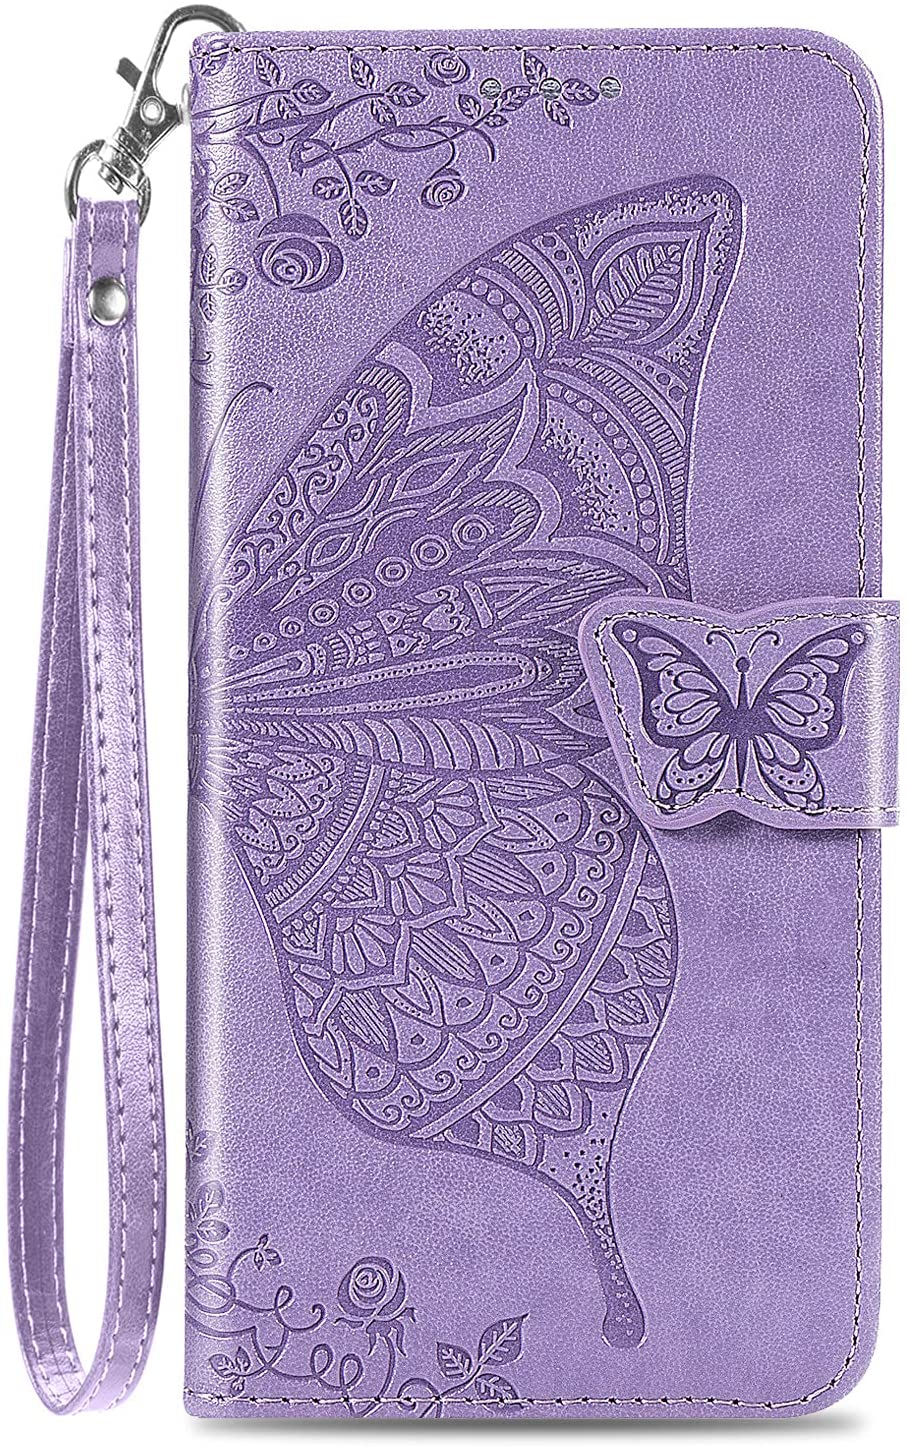 DiGPlus Galaxy S21 5G Wallet Case, [Butterfly & Flower Embossed] PU Leather Wallet Case Flip Protective Phone Cover with Card Slots and Kickstand for Samsung Galaxy S21 6.2-Inch (Lavender)